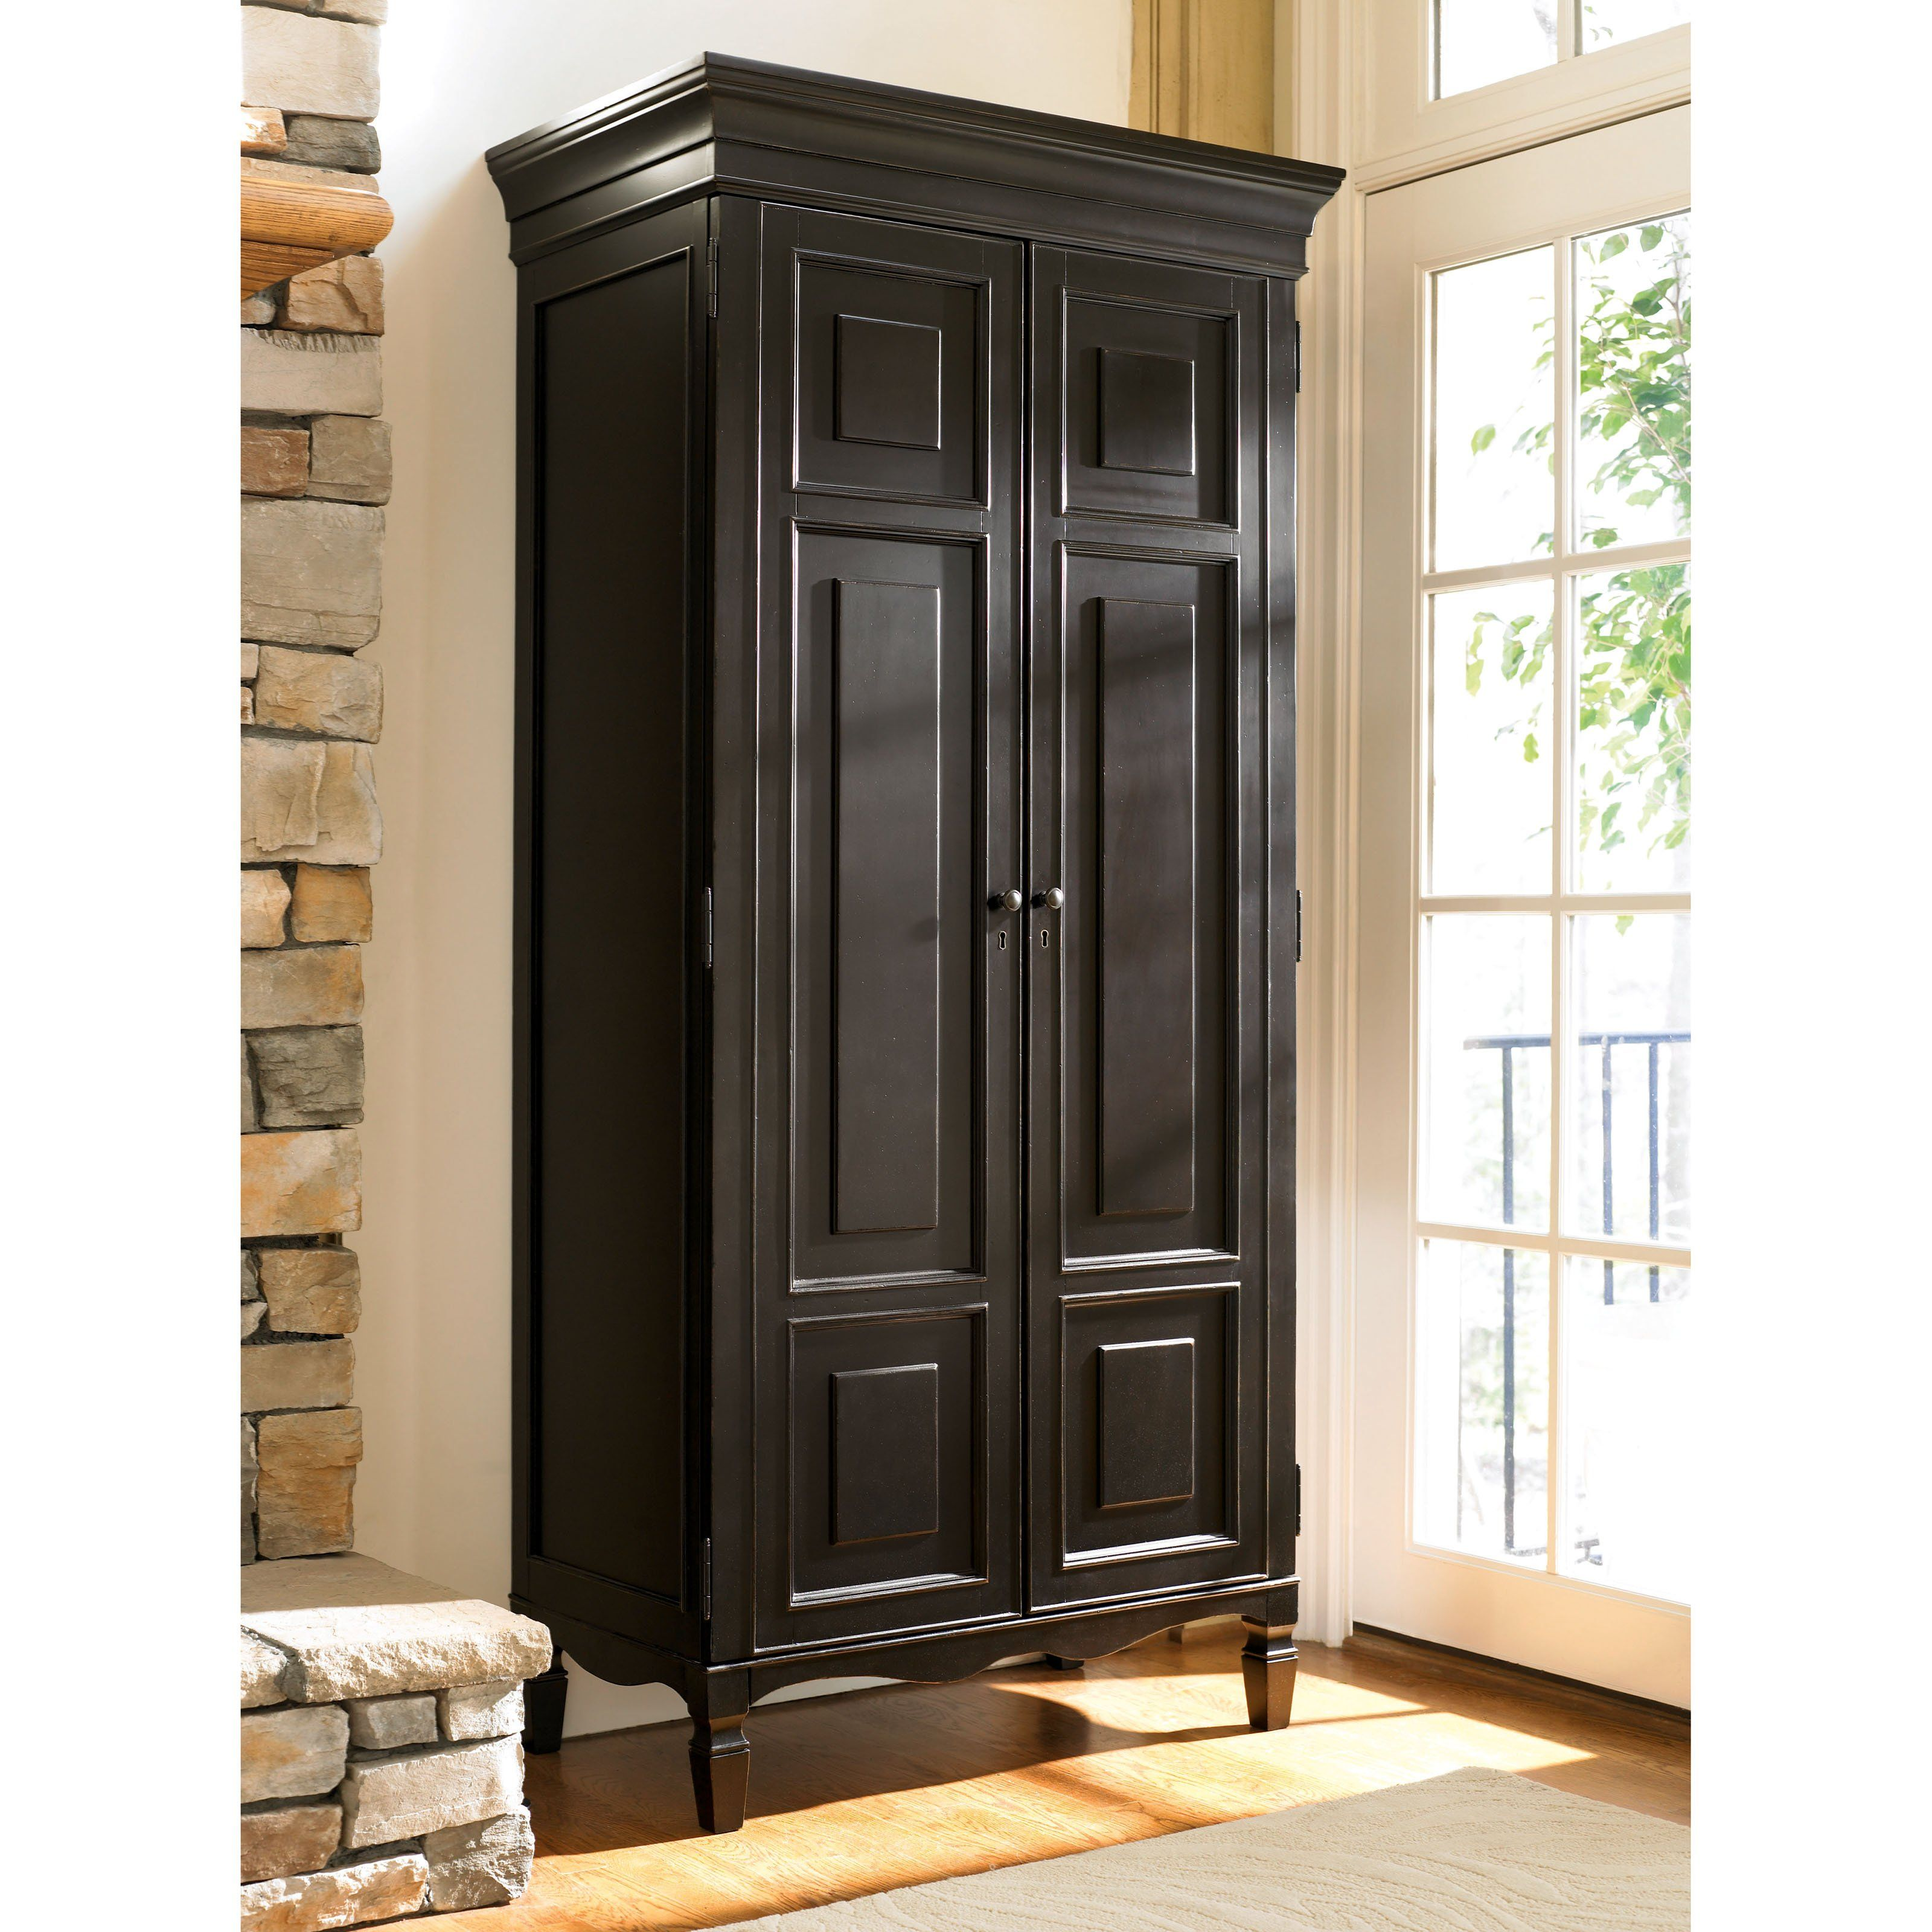 Merveilleux Summer Hill 2 Door Armoire  Midnight   The Summer Hill 2 Door Armoire